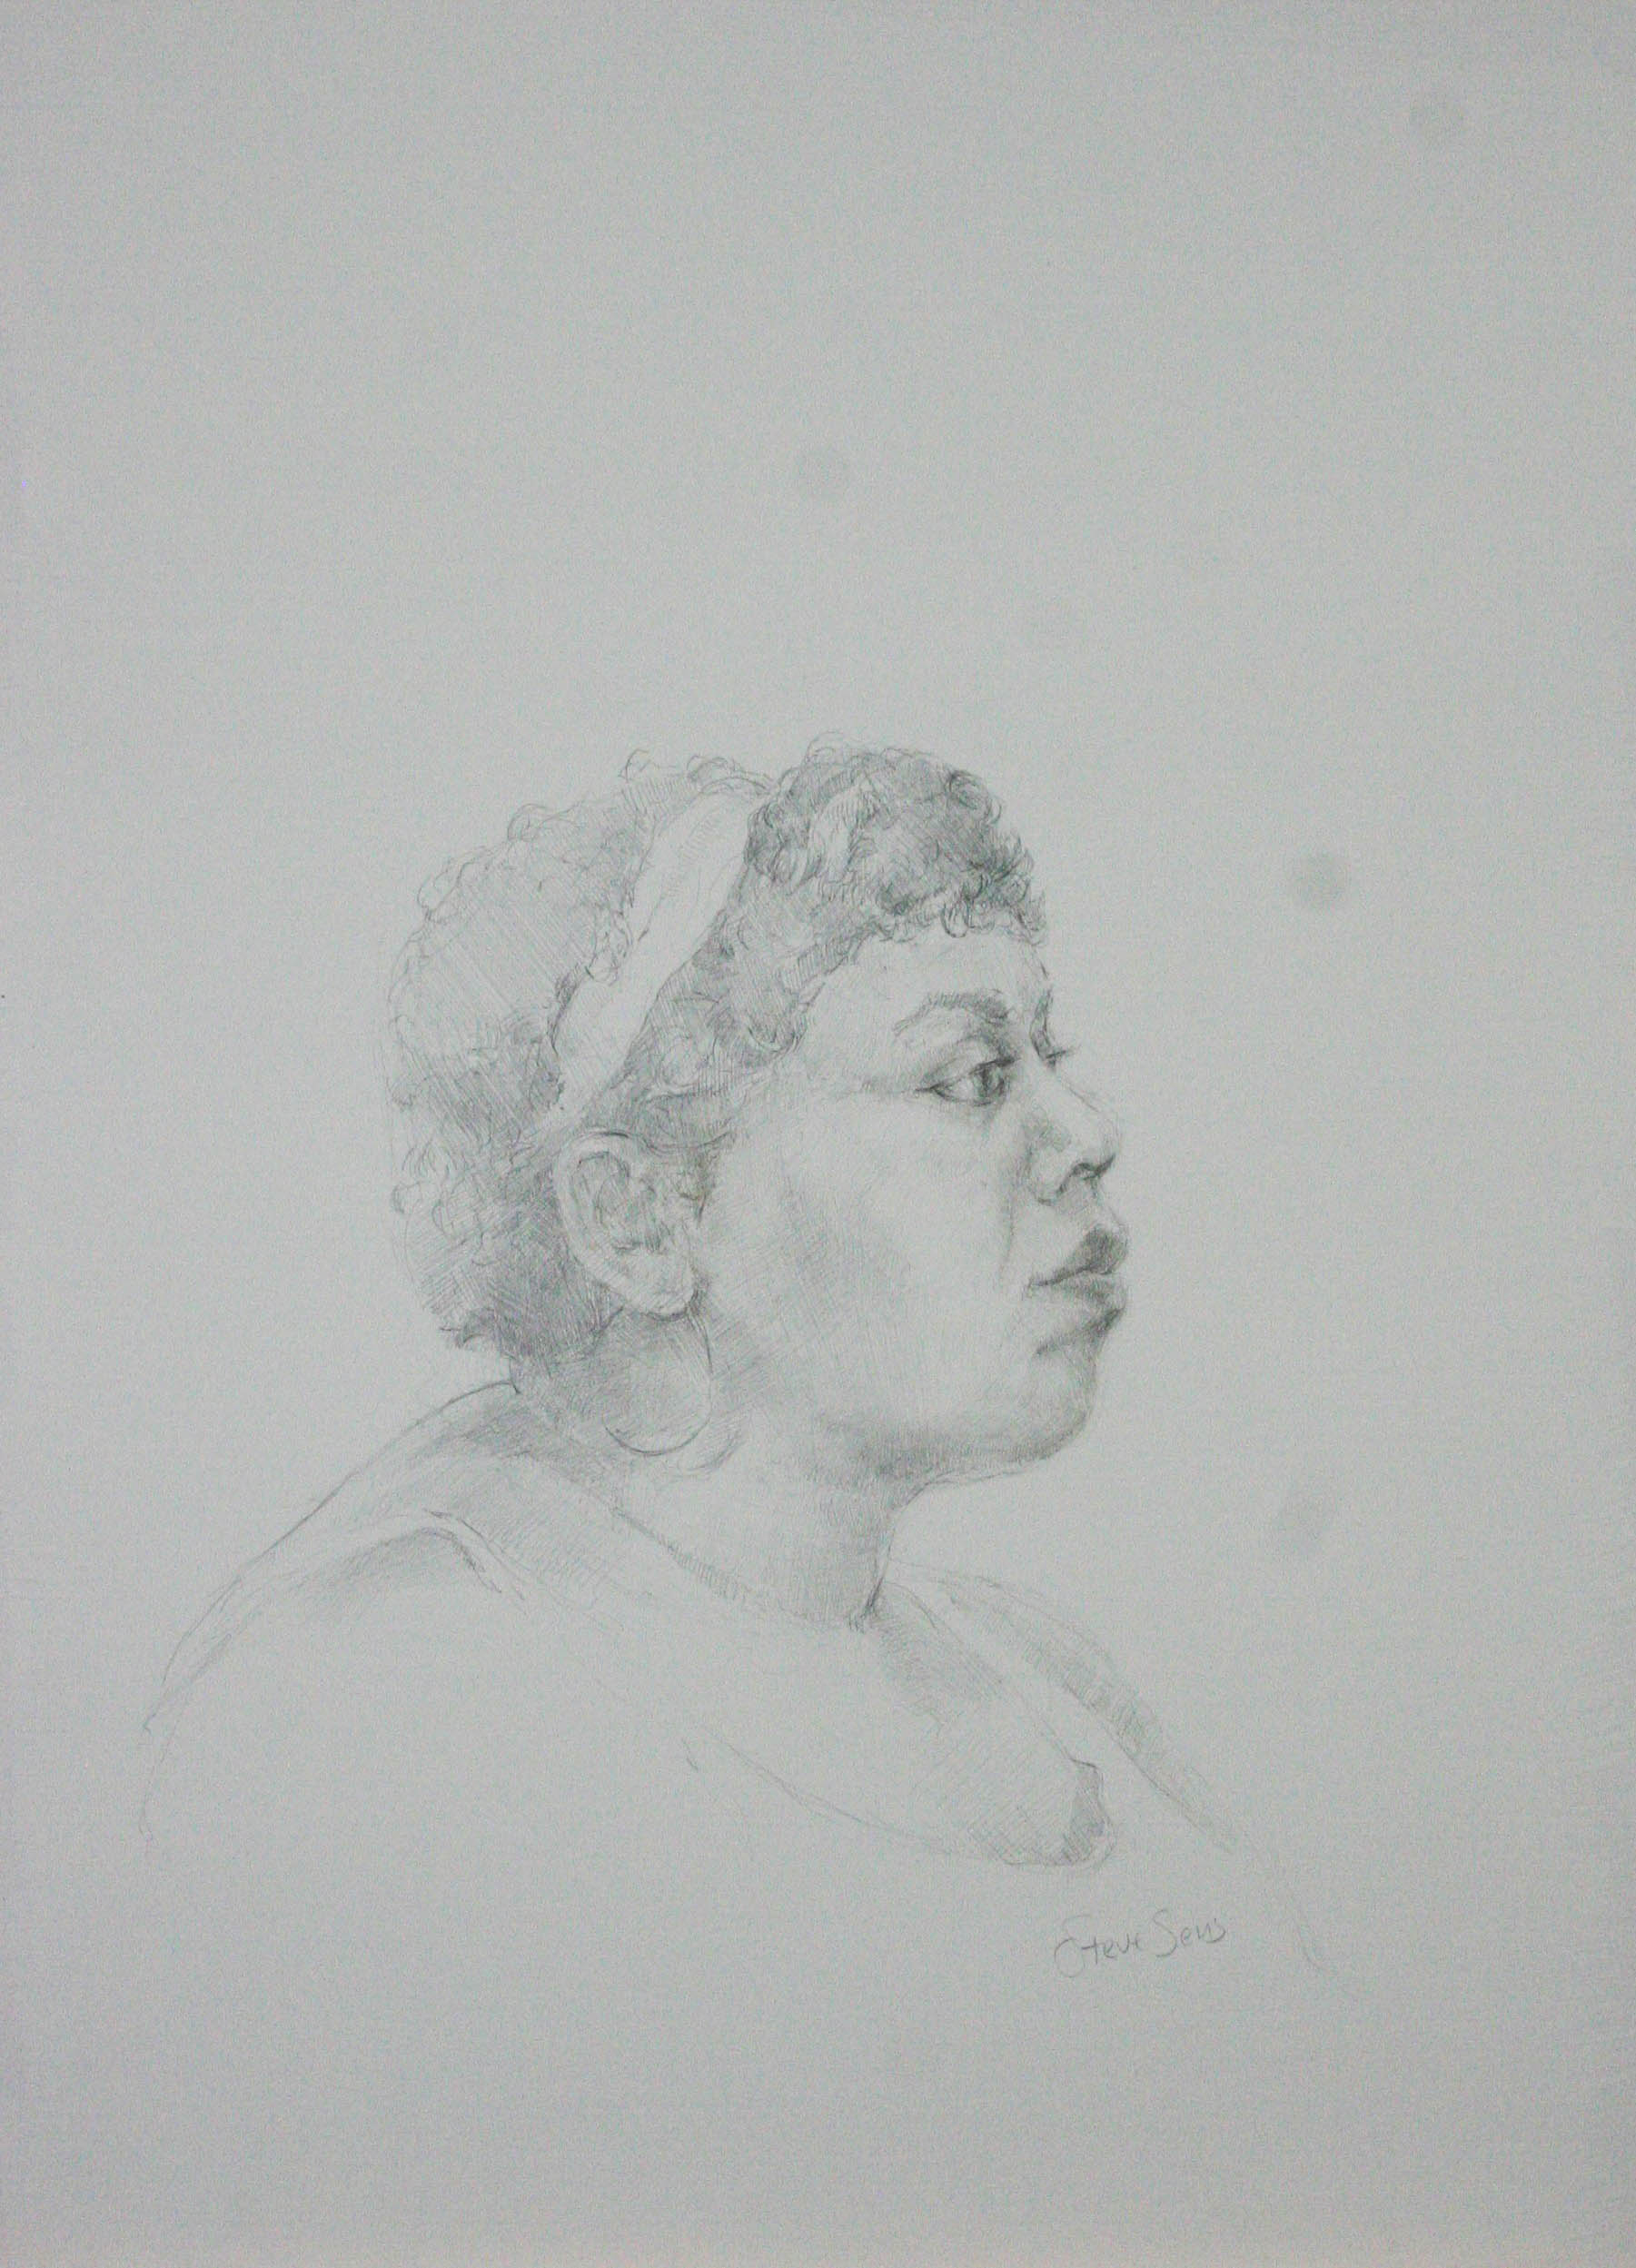 Steven Sens did this silverpoint drawing.